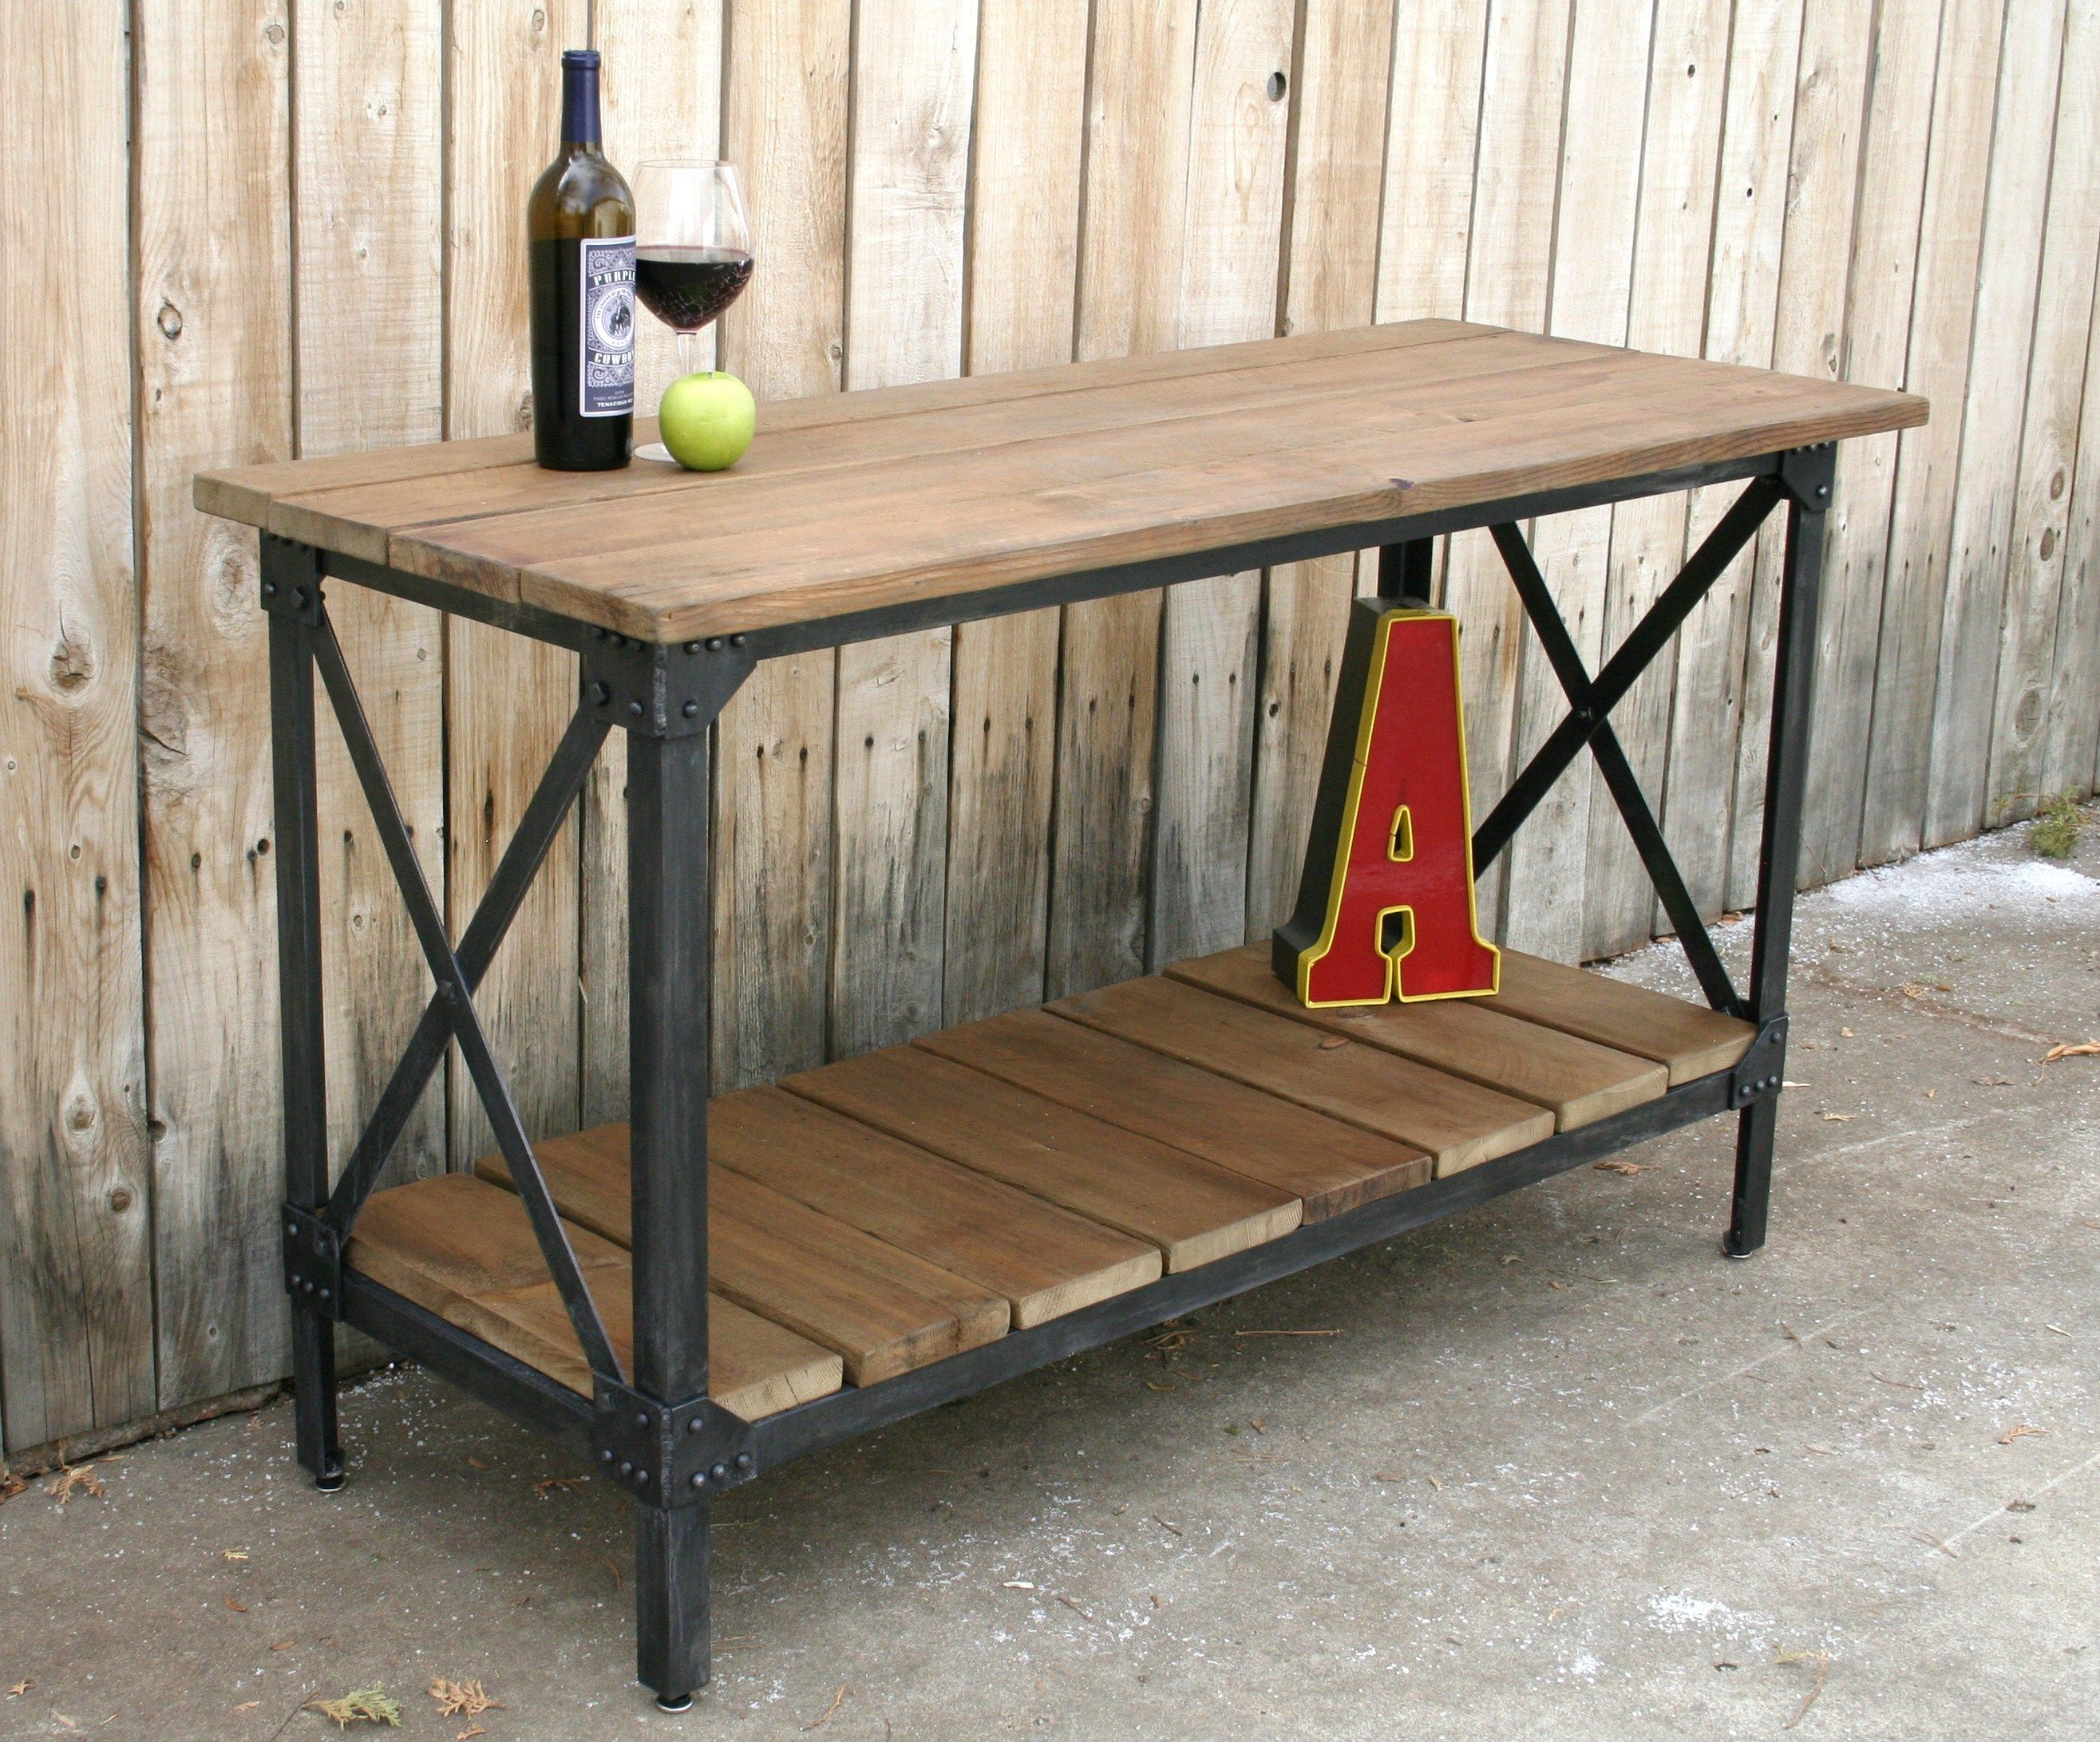 Iron And Wood Patio Furniture wood & metal industrial rustic console table, accent table, liquor